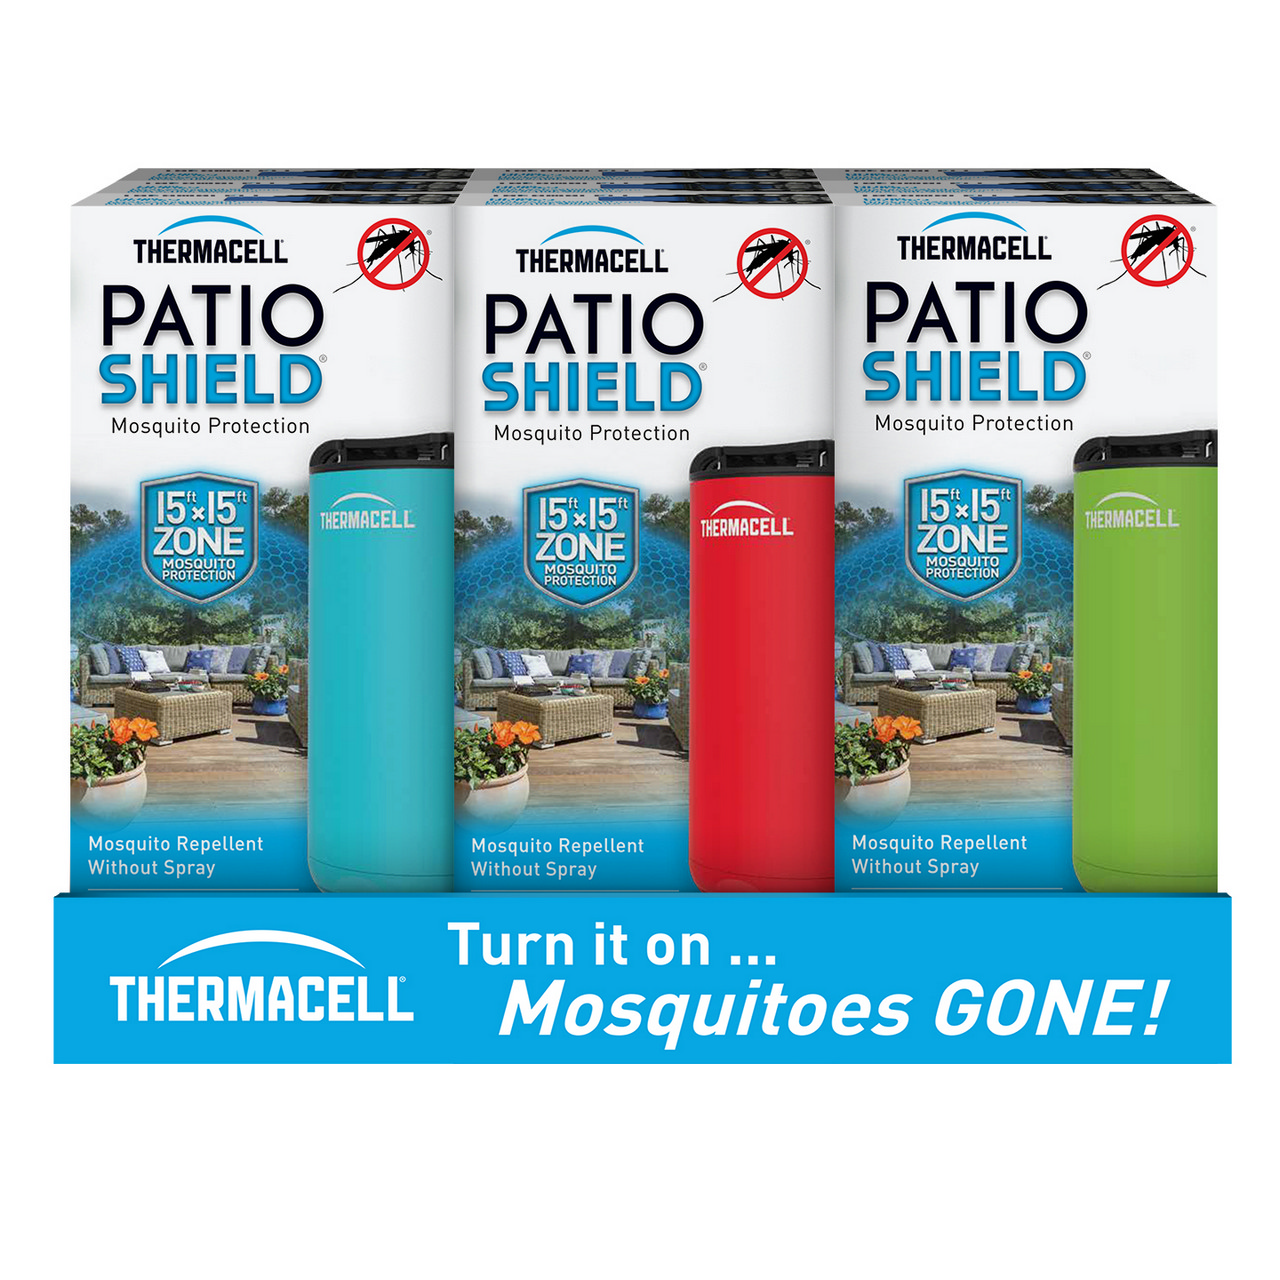 thermacell patio shield mosquito repellent new frontier. Black Bedroom Furniture Sets. Home Design Ideas